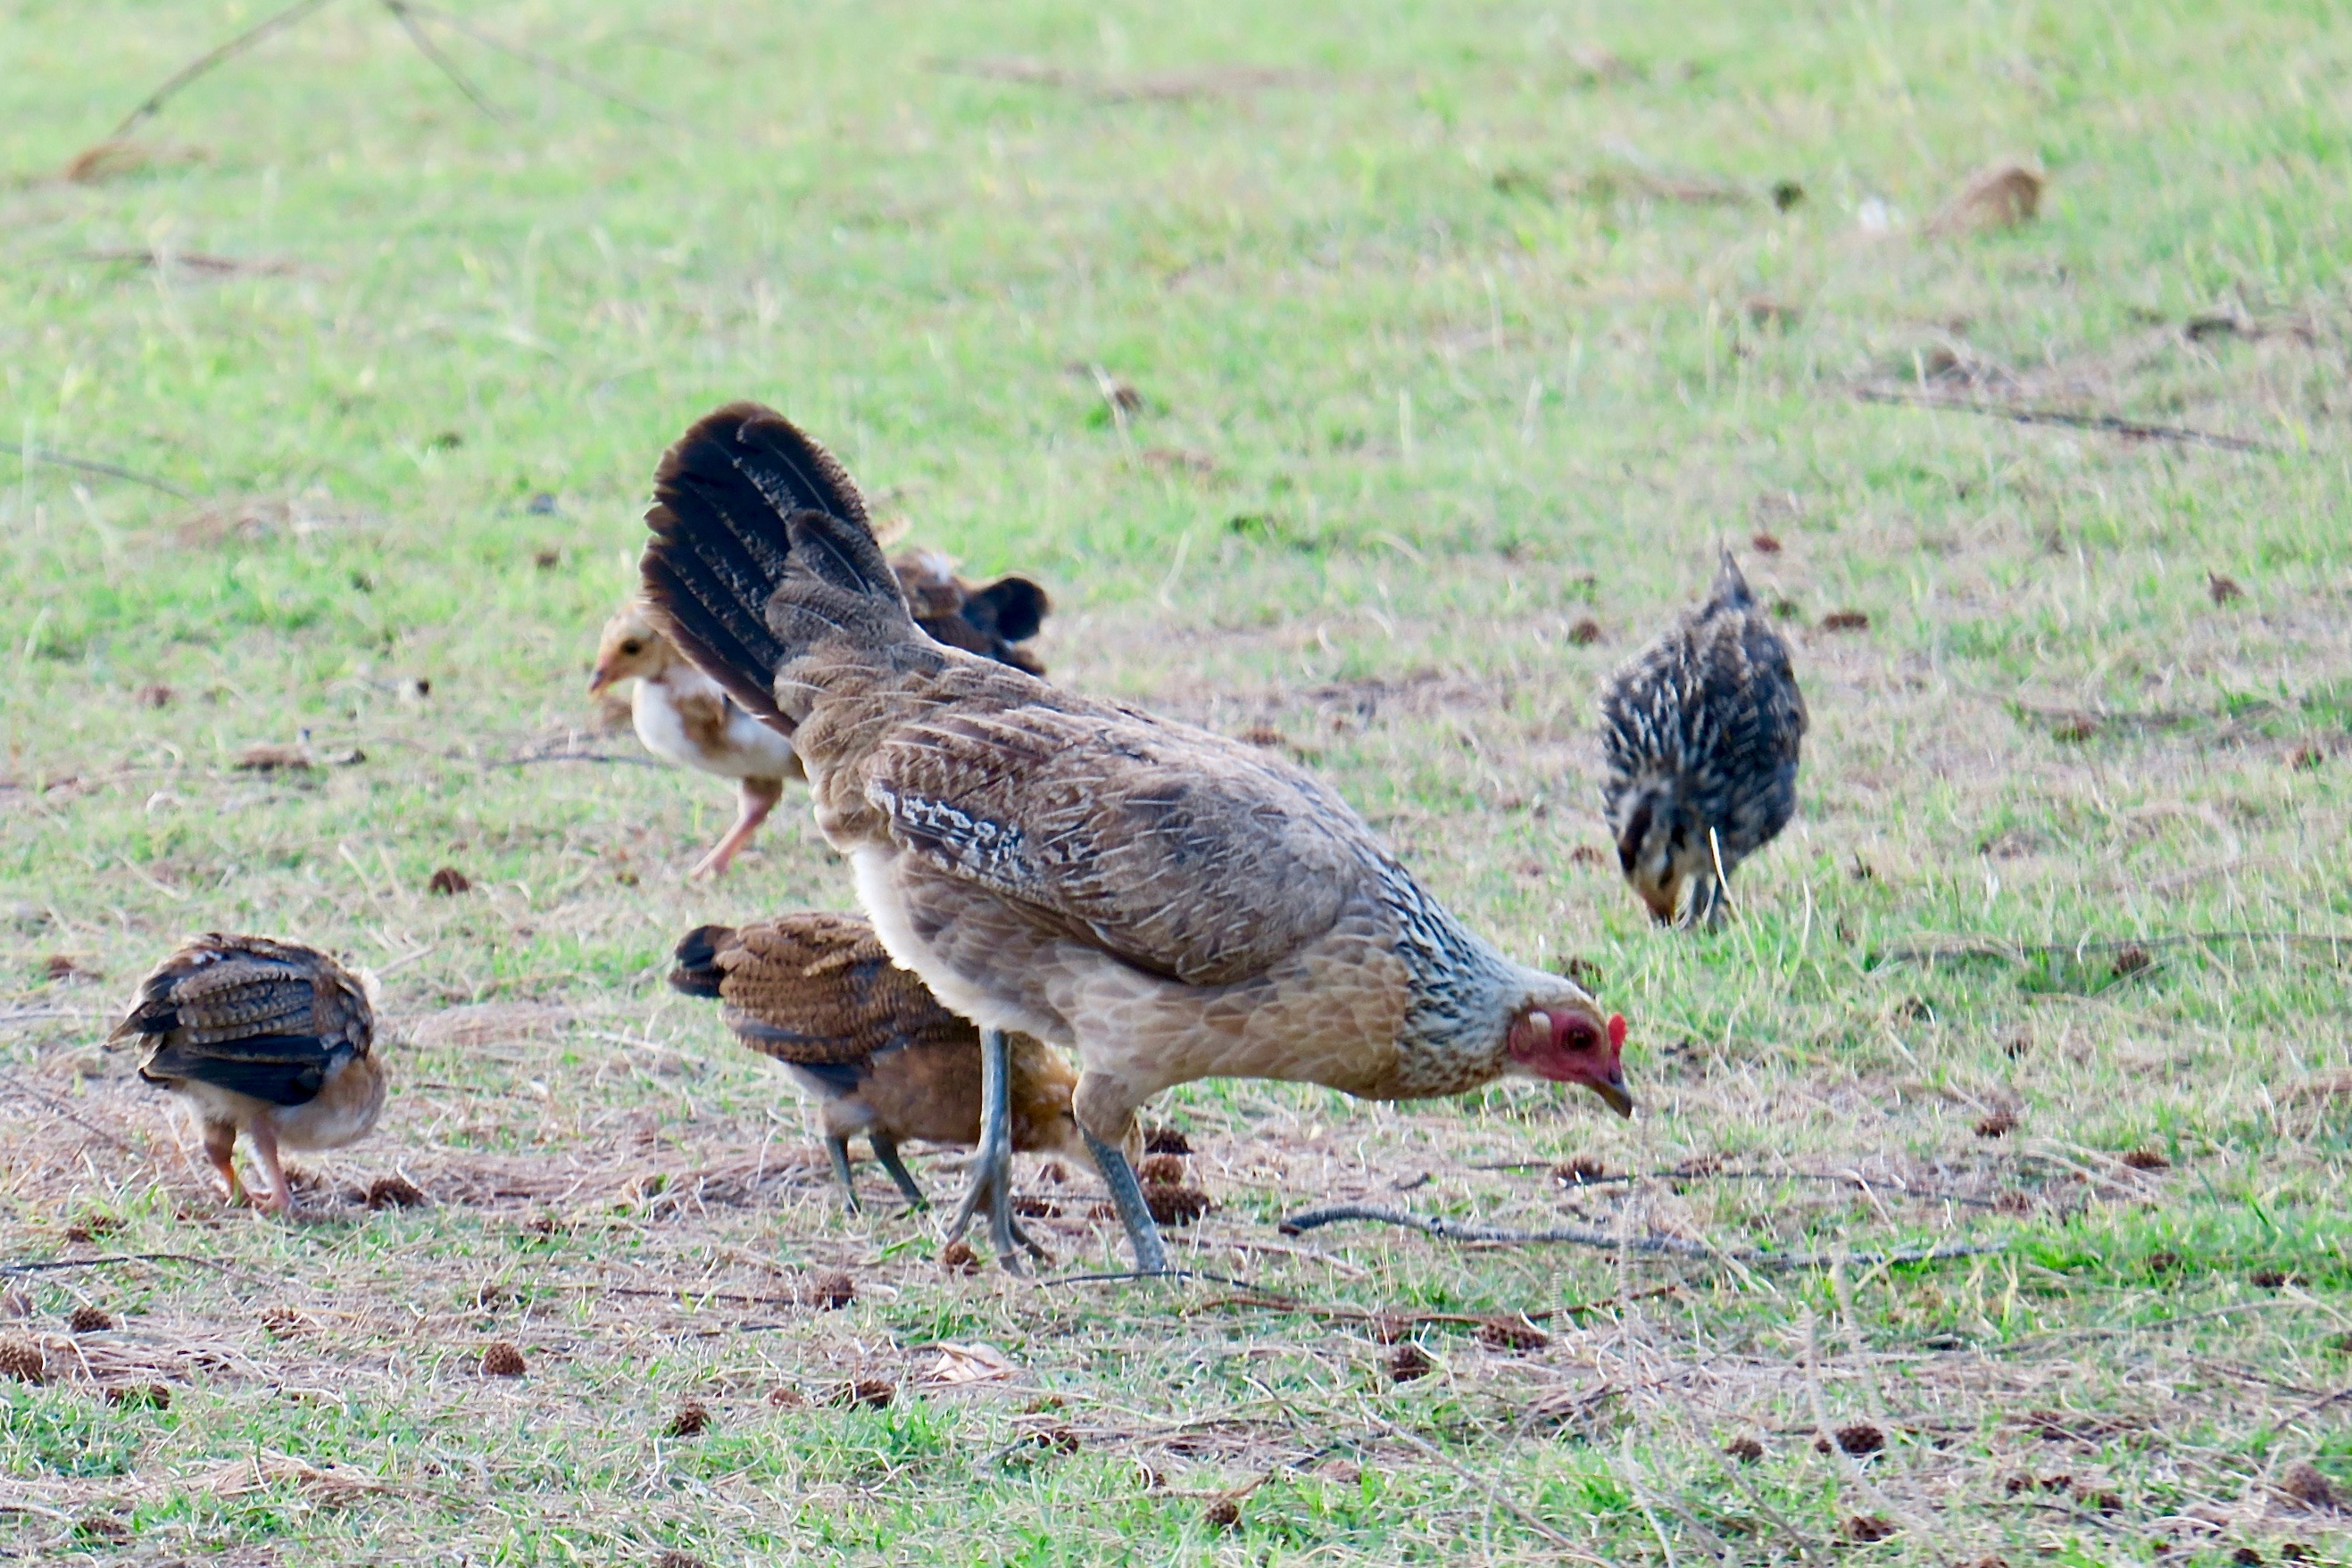 mother-and-chicks-feeding-in-grass-kauai